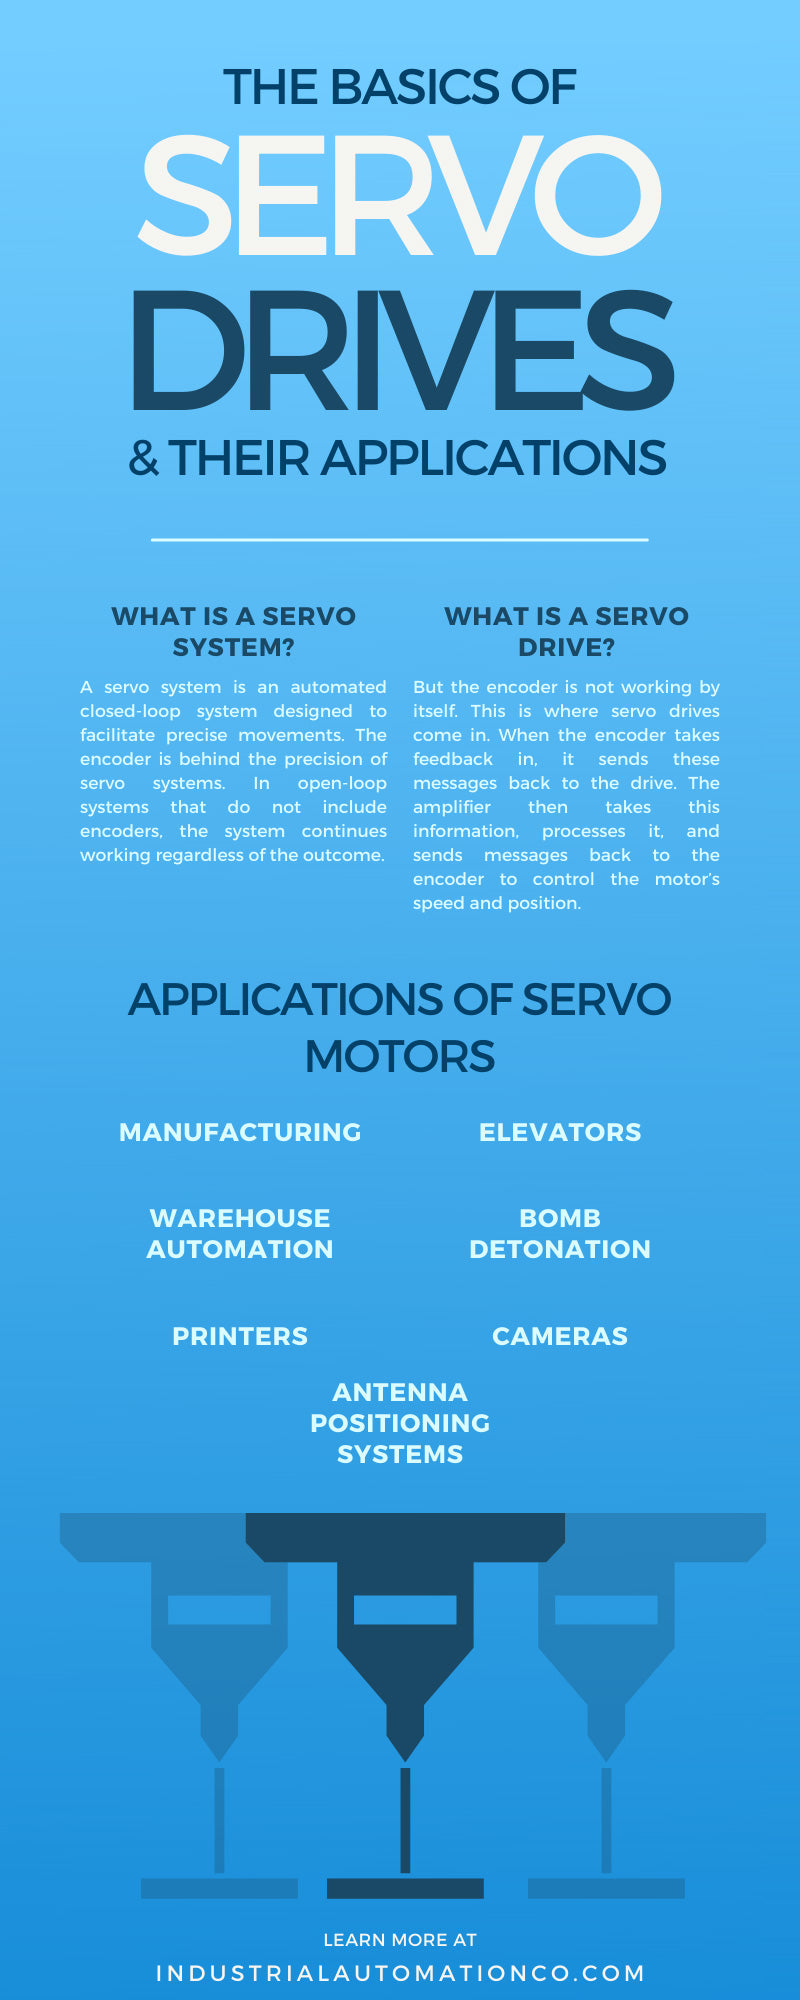 The Basics of Servo Drives & Their Applications